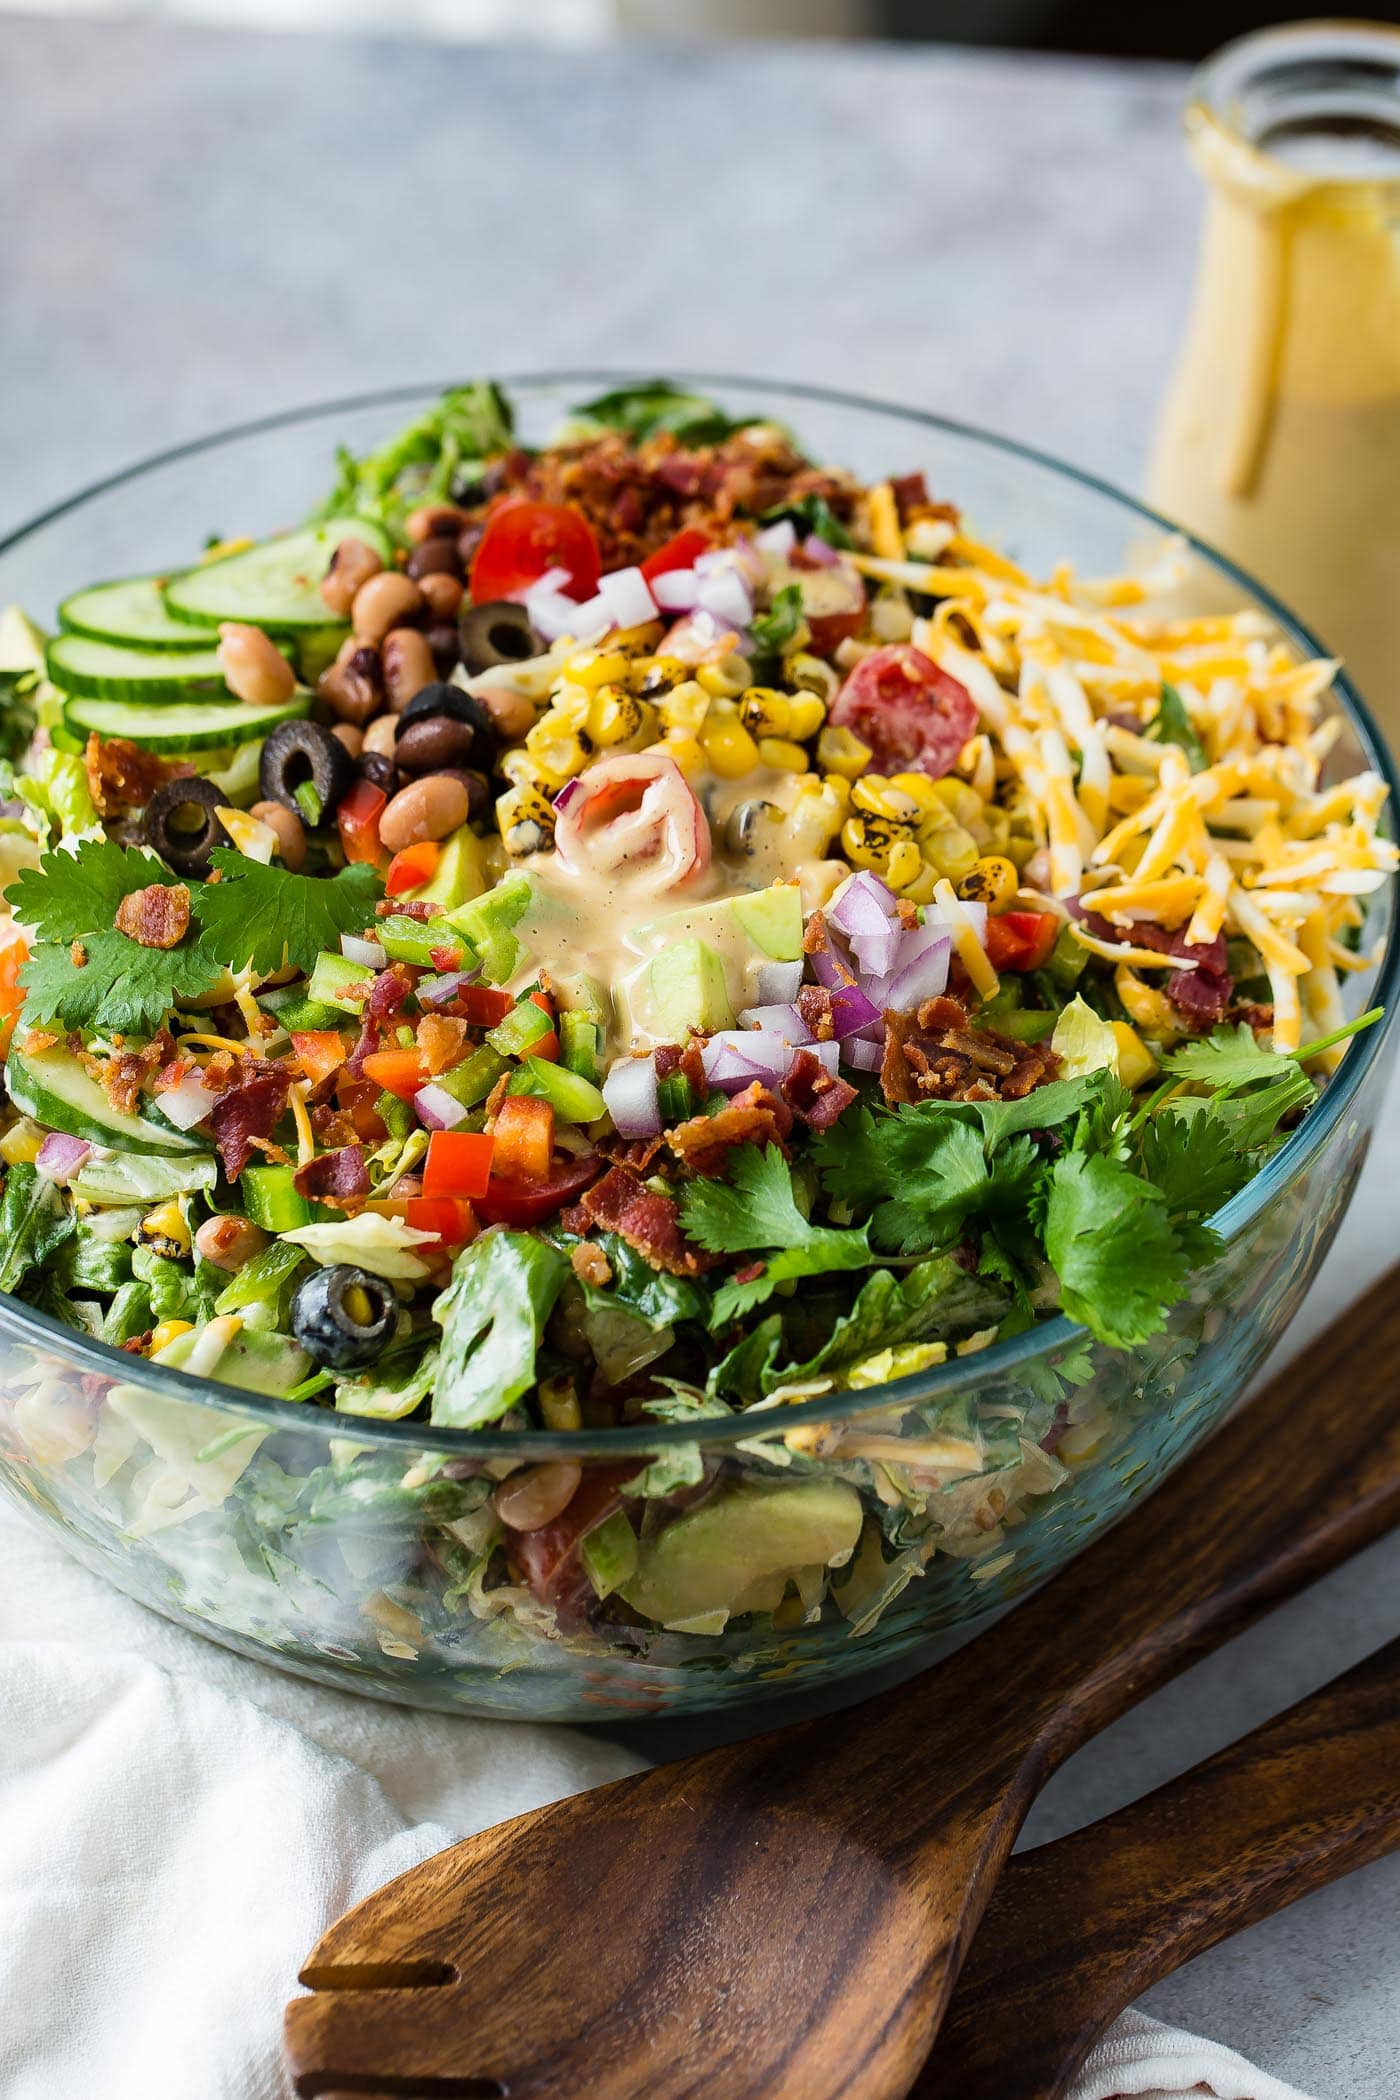 Cowboy salad in a glass serving bowl all ready to be served. It has sliced cucumbers, chopped lettuce, avocados, peppers, bacon, and olives and shredded cheese. It is topped with dressing.